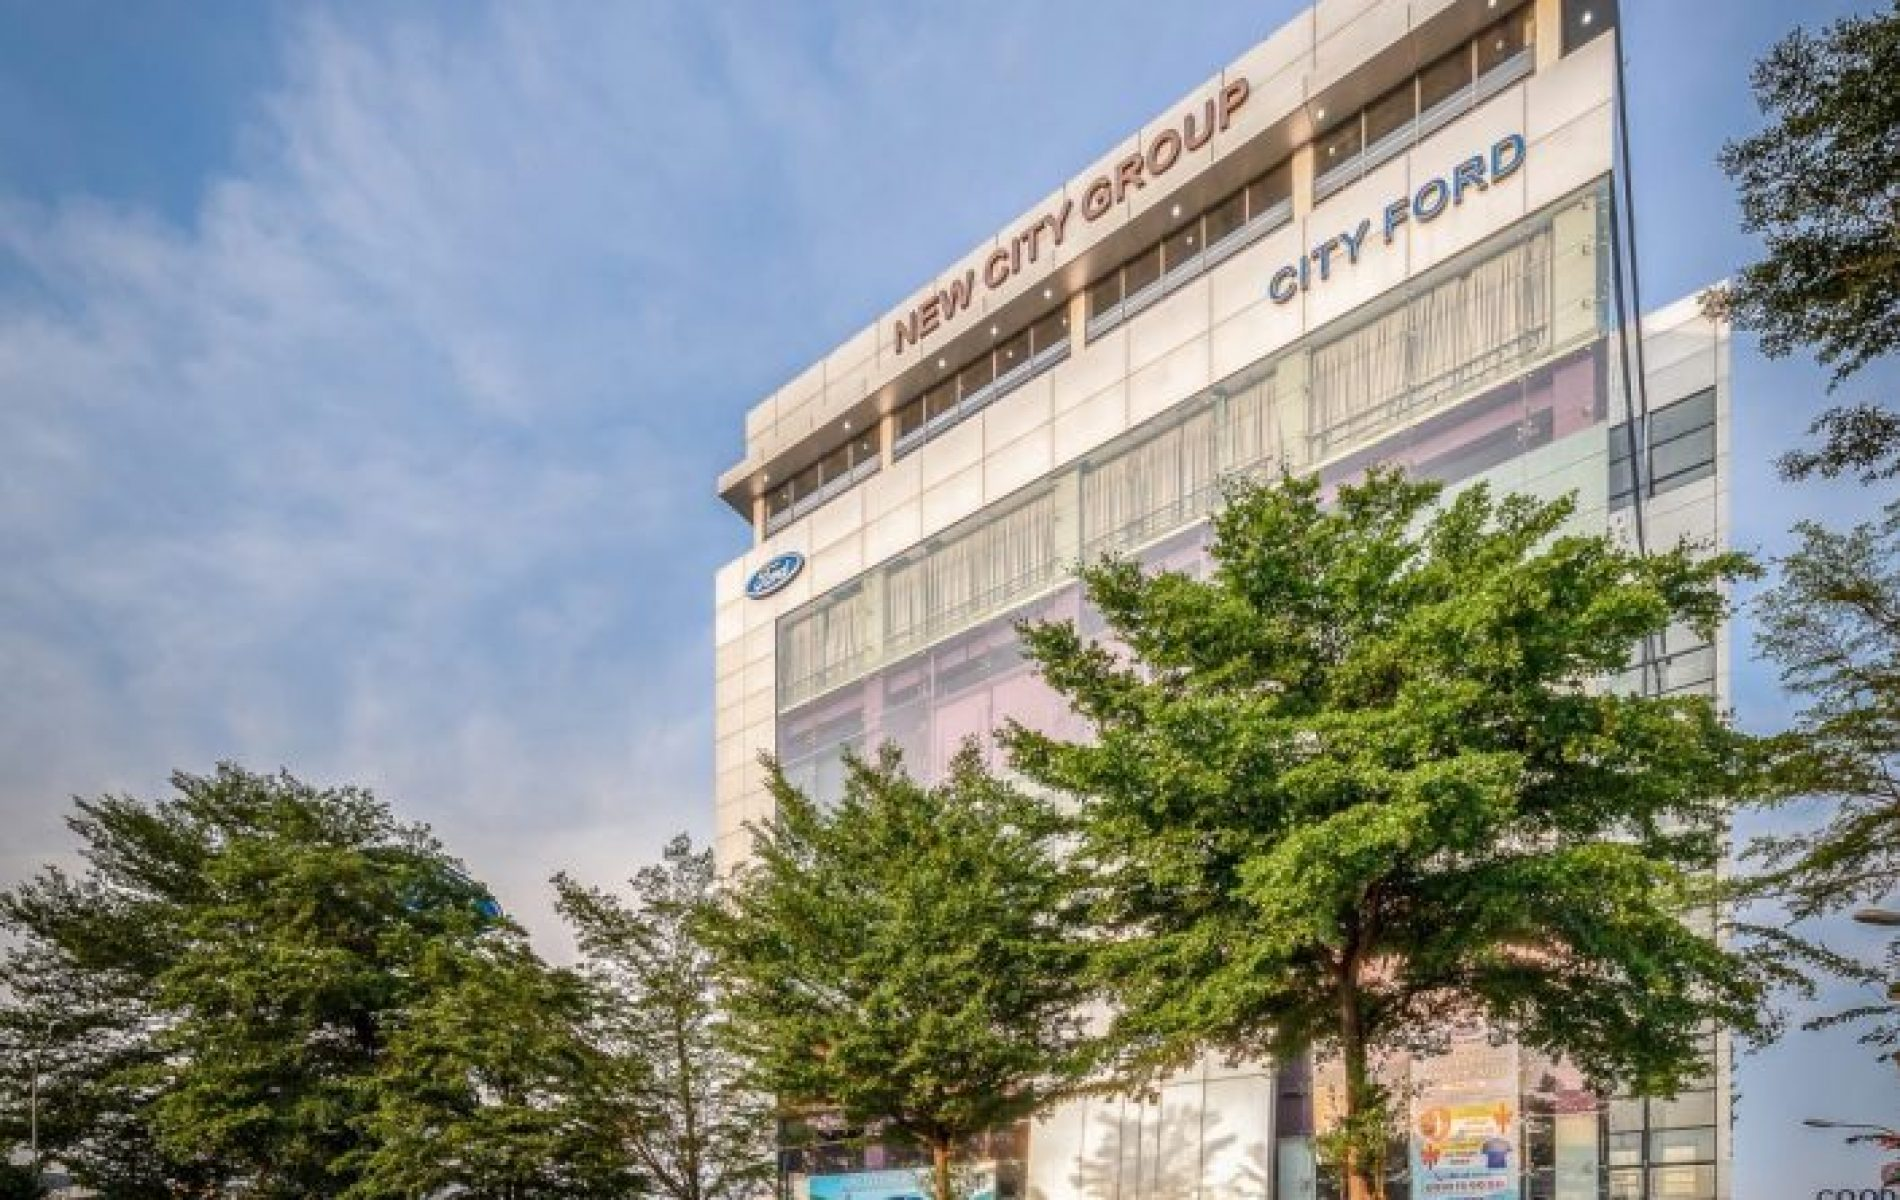 ford-newcity-group (12)